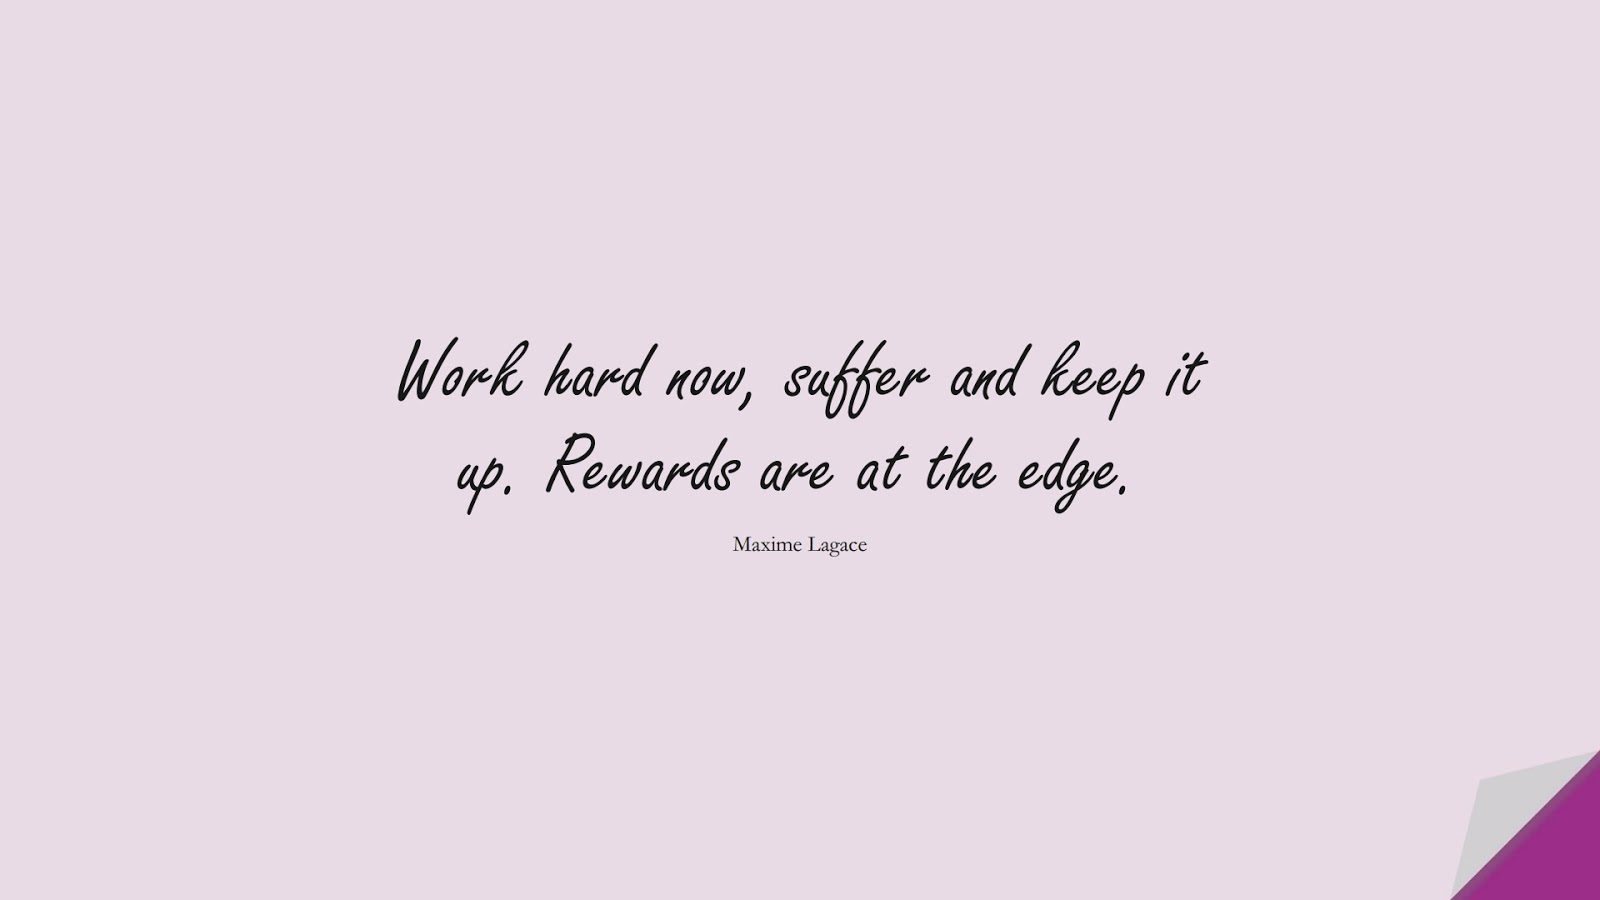 Work hard now, suffer and keep it up. Rewards are at the edge. (Maxime Lagace);  #HardWorkQuotes